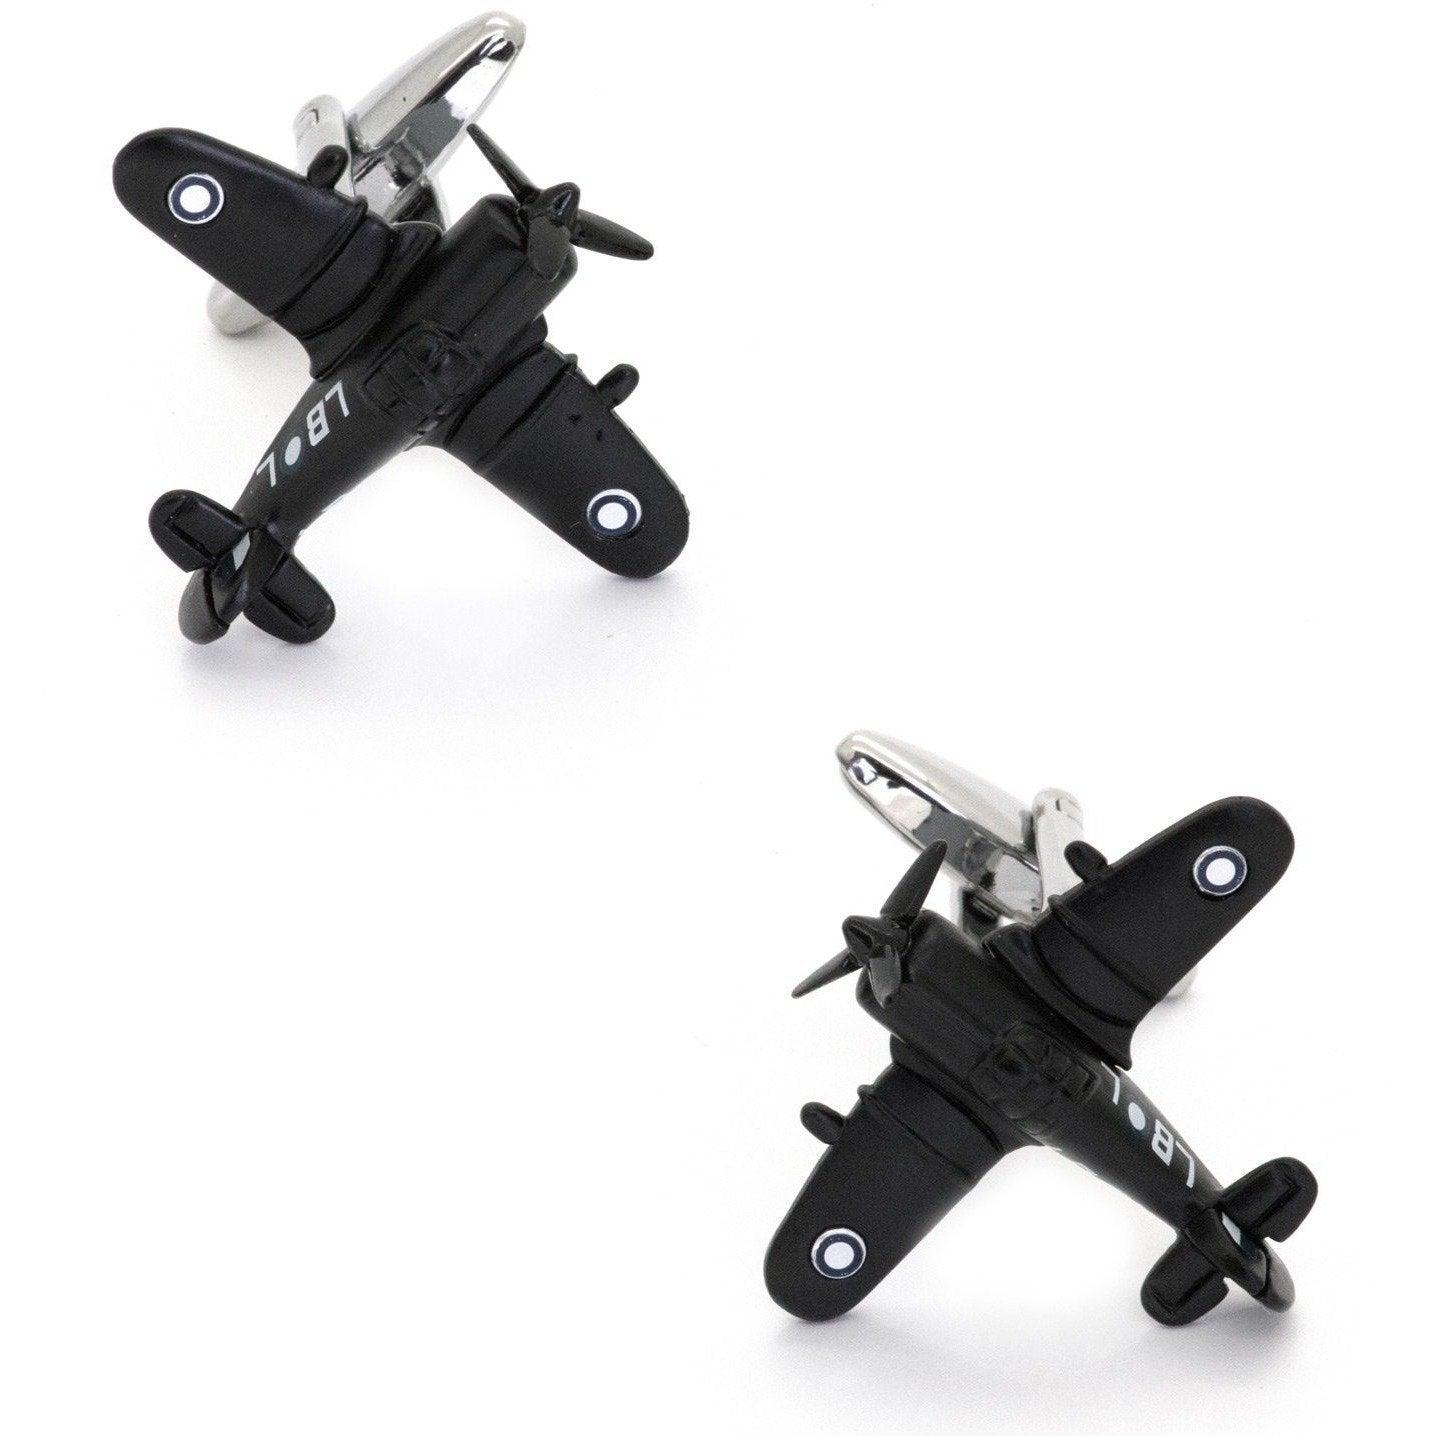 CAC Boomerang Fighter Airplane Cufflinks in Black, Novelty Cufflinks, Cuffed.com.au, CL6817, $29.00